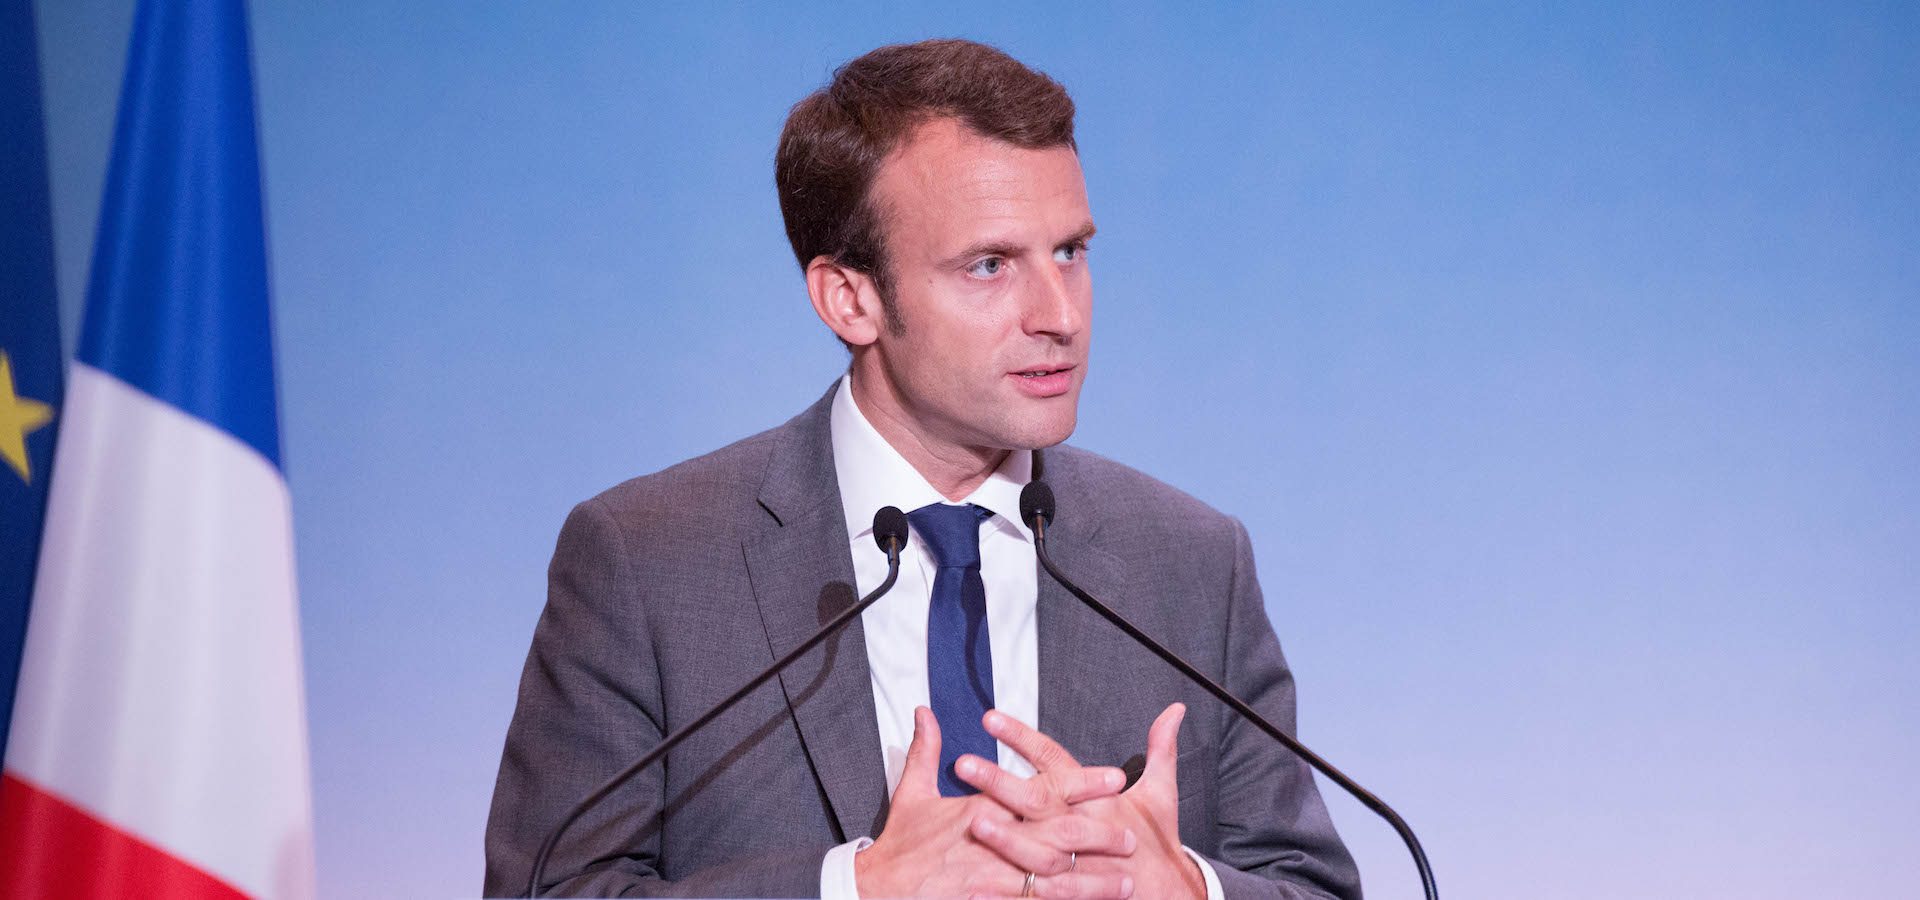 Emmanuel Macron (French President) speaking next to a French flag with blue backdrop